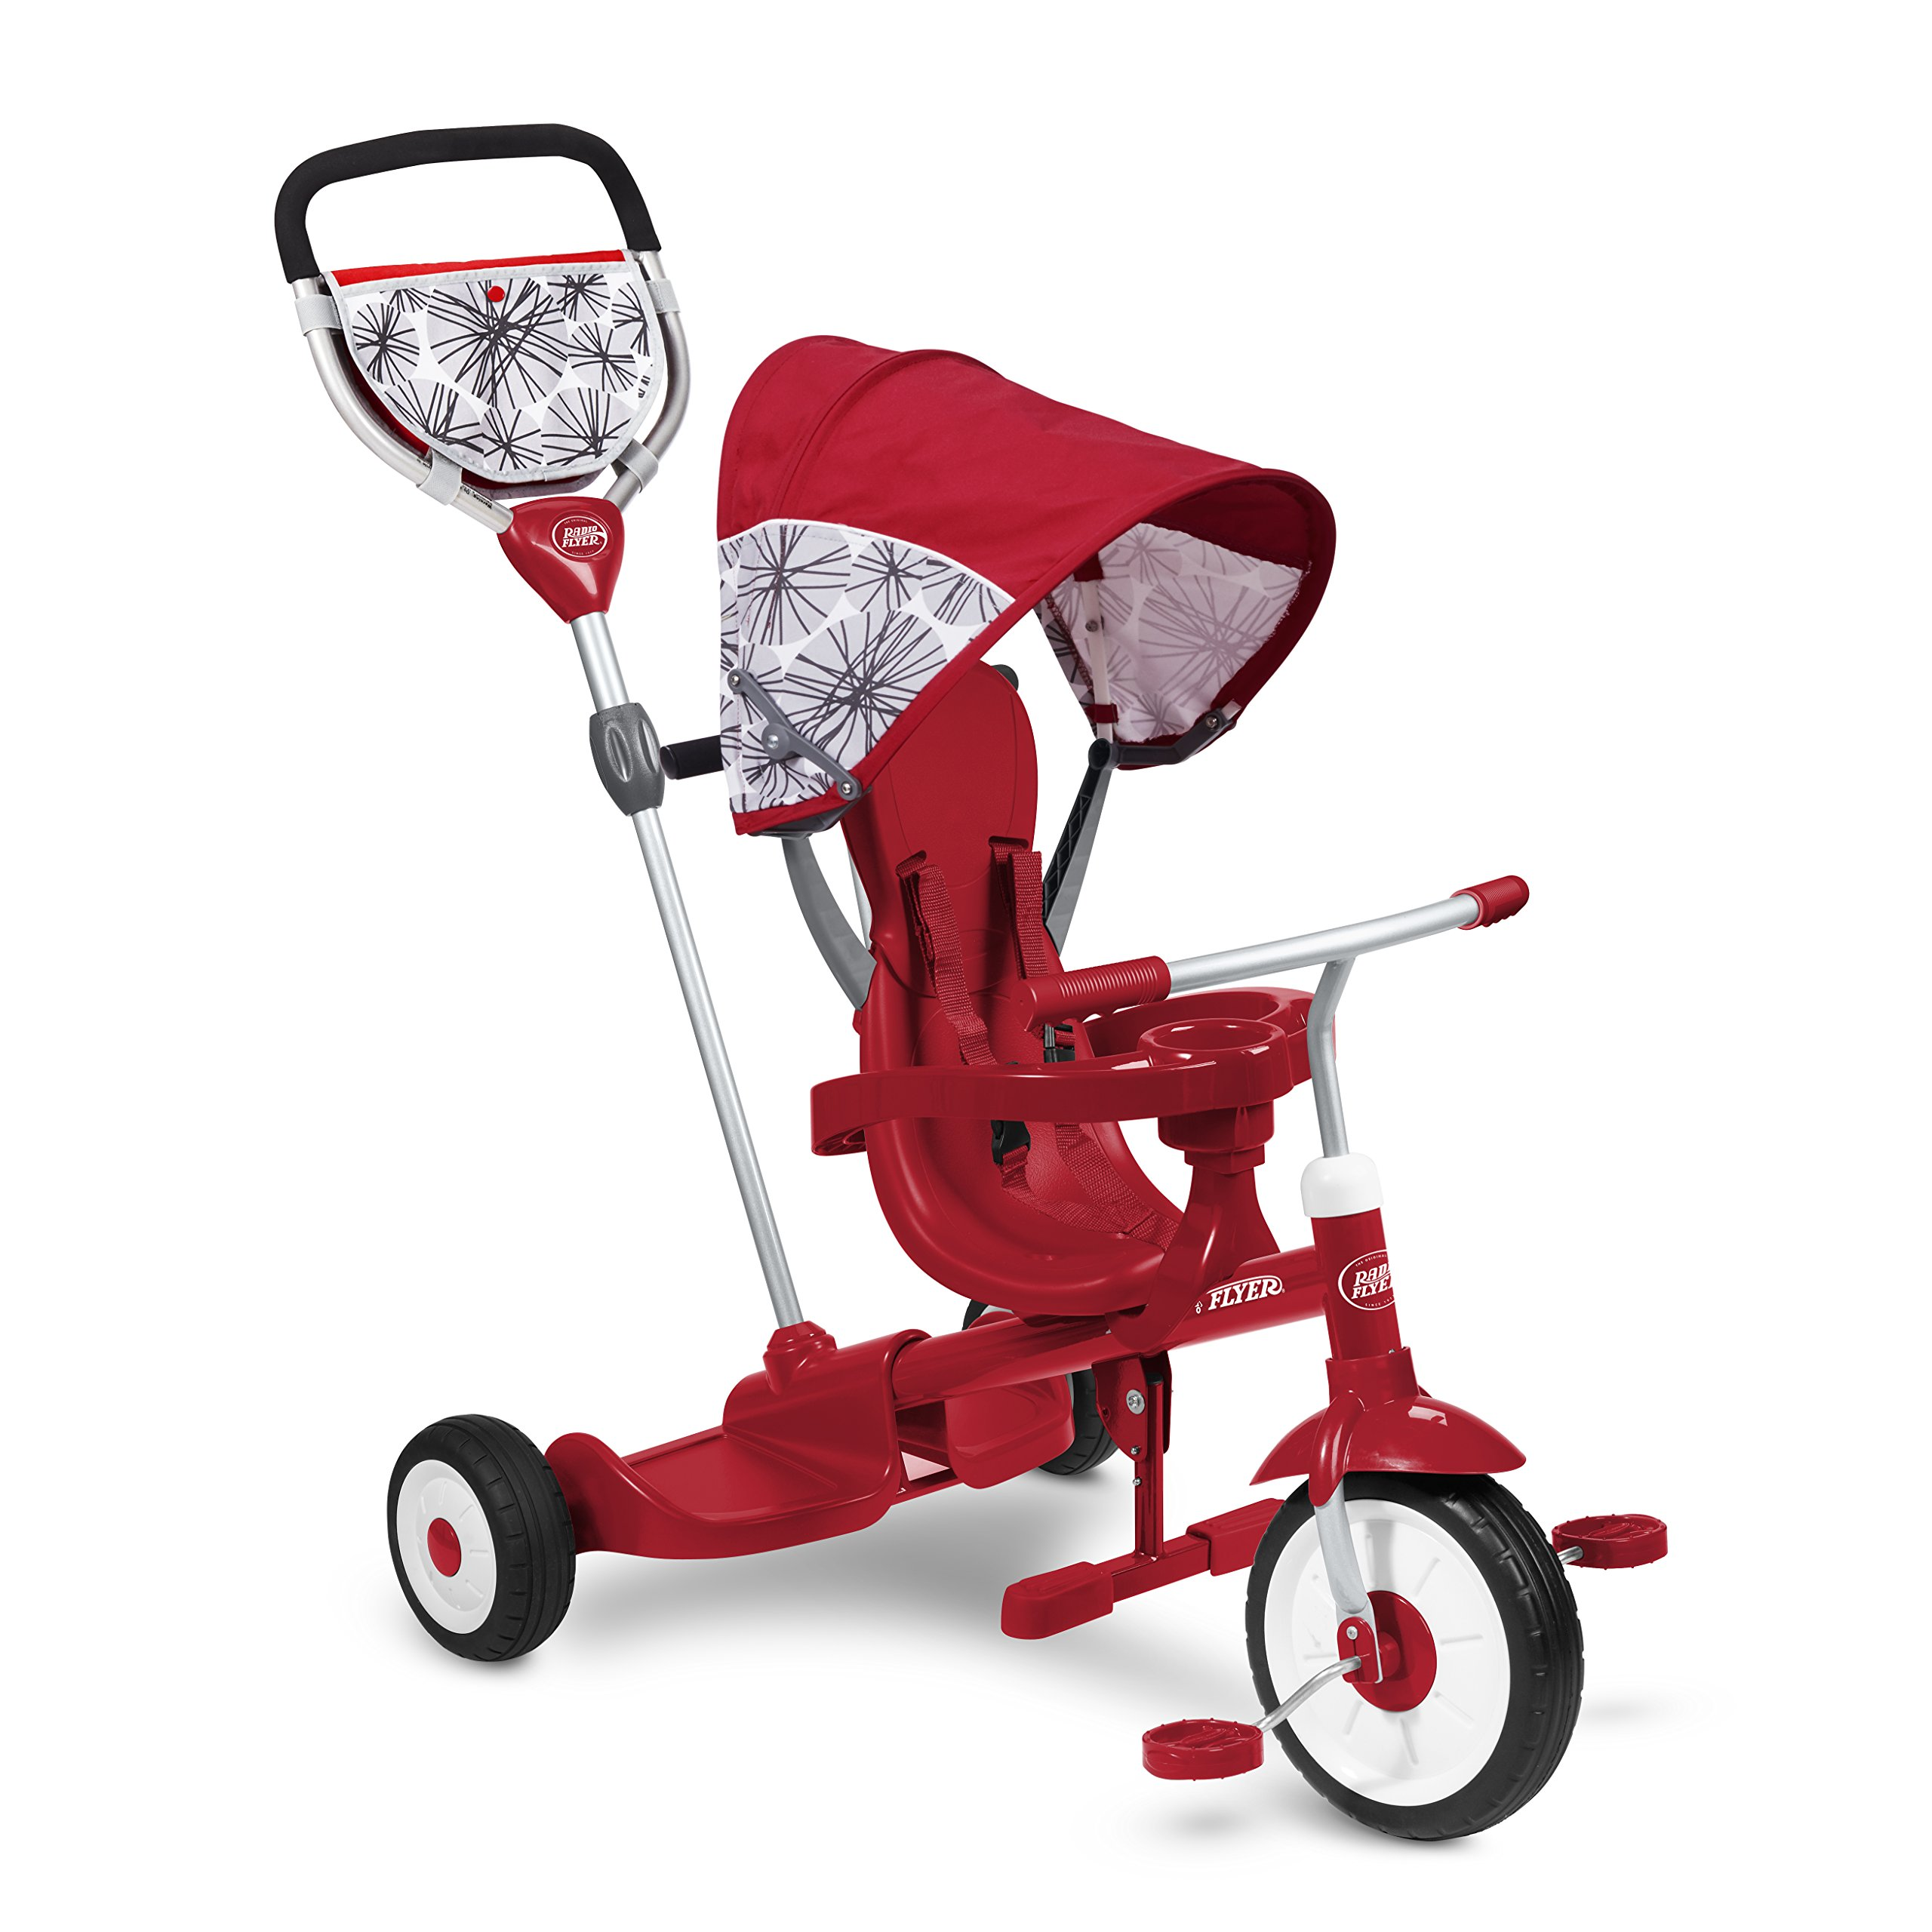 Radio Flyer Deluxe Ride & Stand Stroll 'N Trike by Radio Flyer